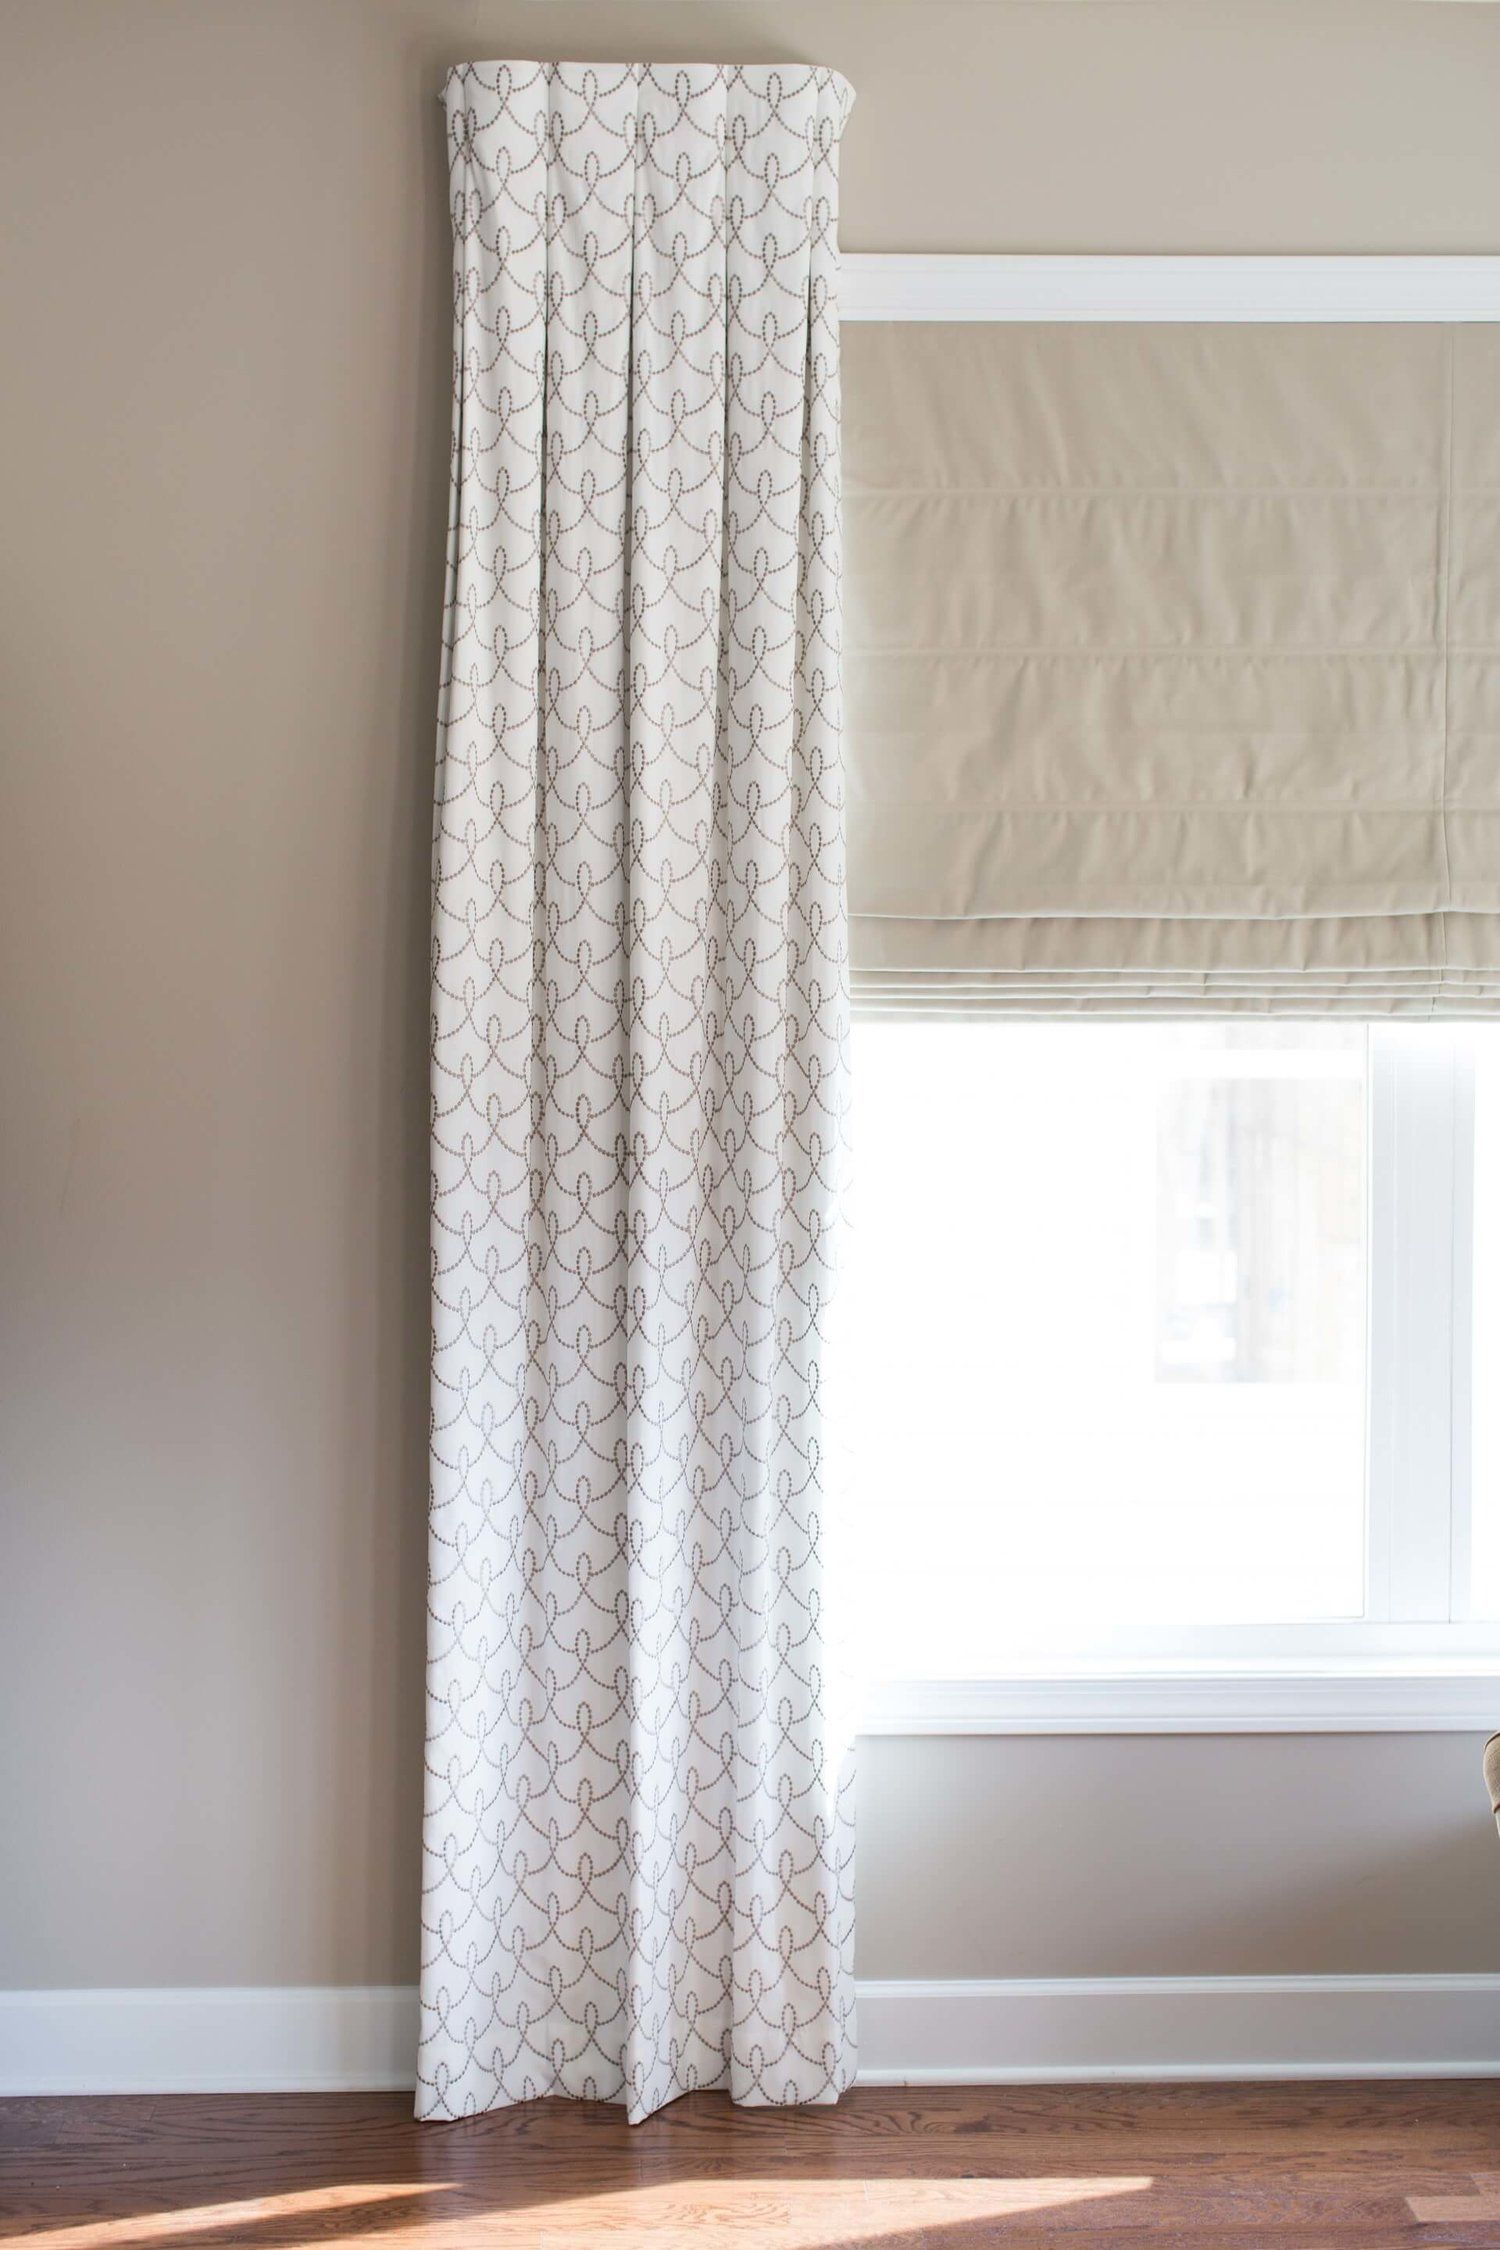 Inverted Flat Pleat Drapery Panel With No Rod Concealed Mounting